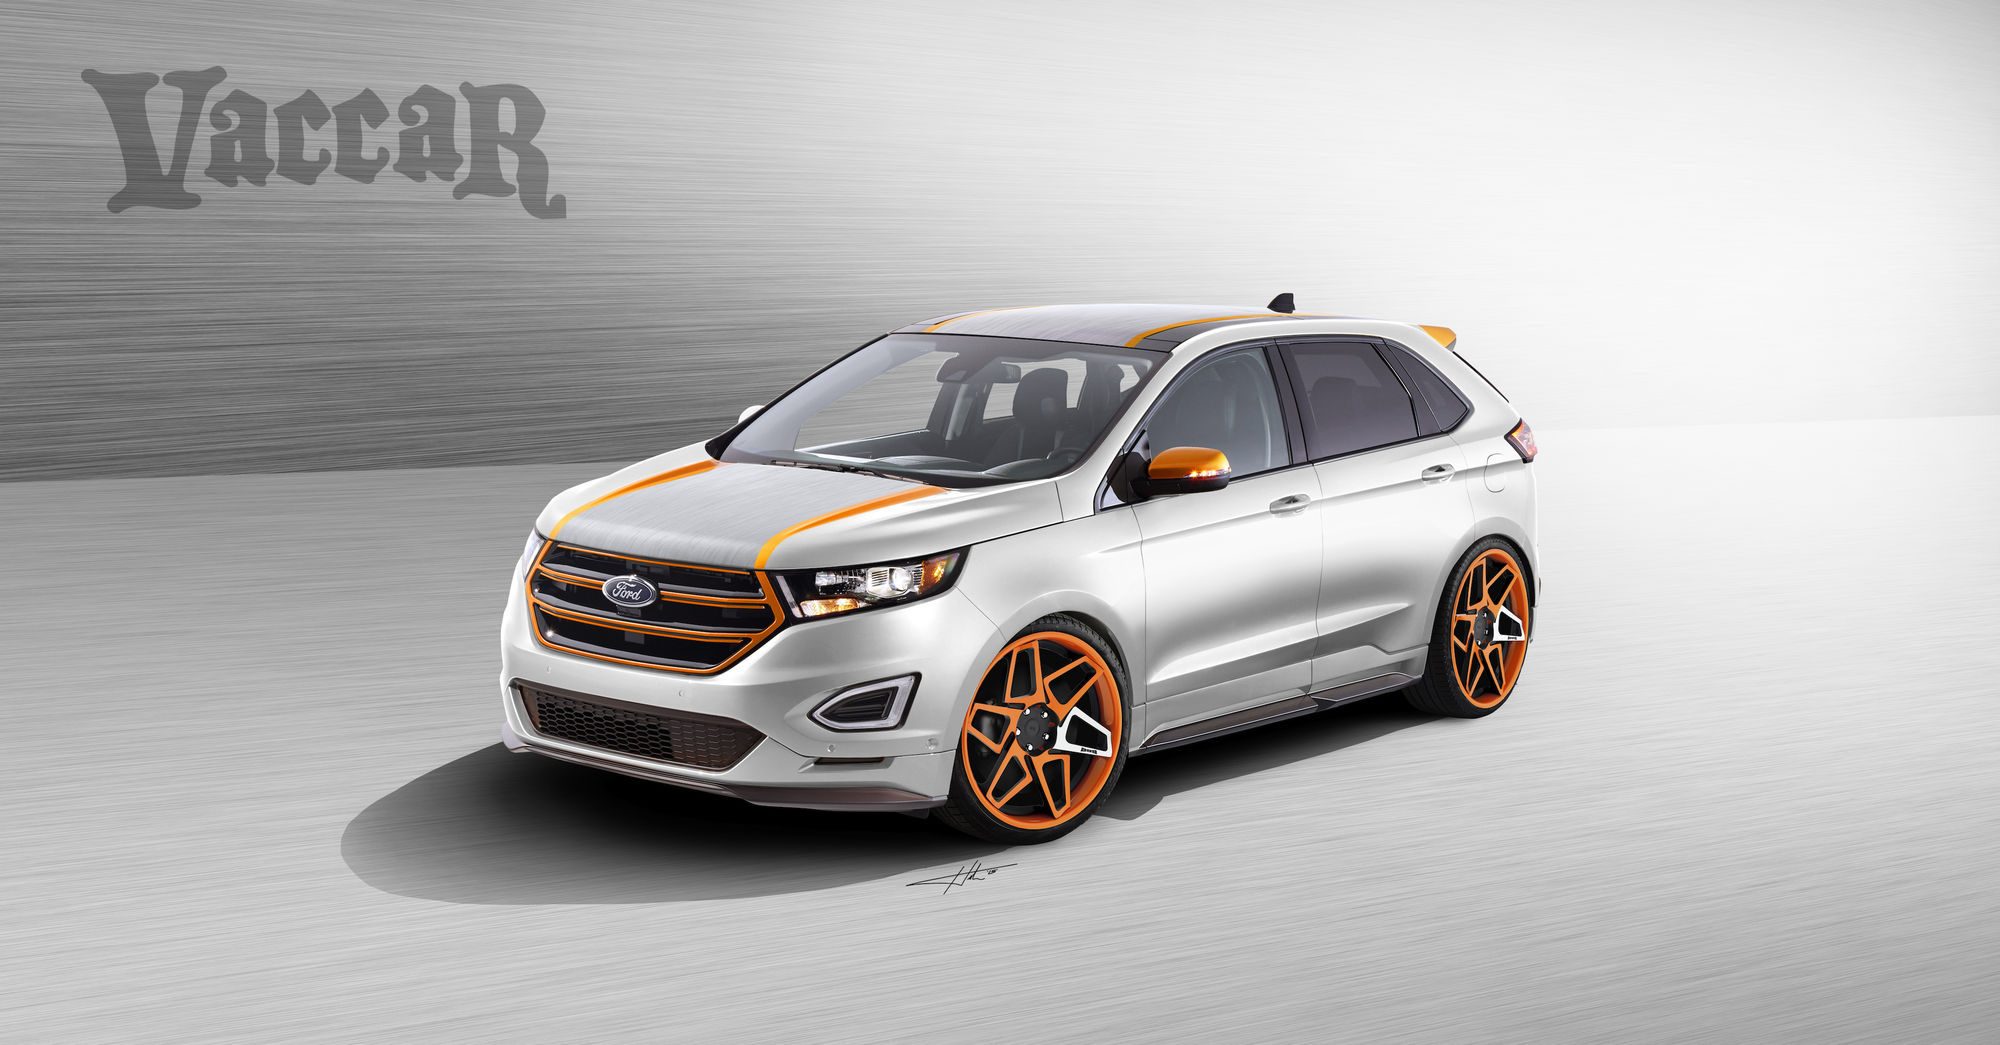 2015 Ford Edge | 2015 Vaccar Ford Edge Sport - Rendering